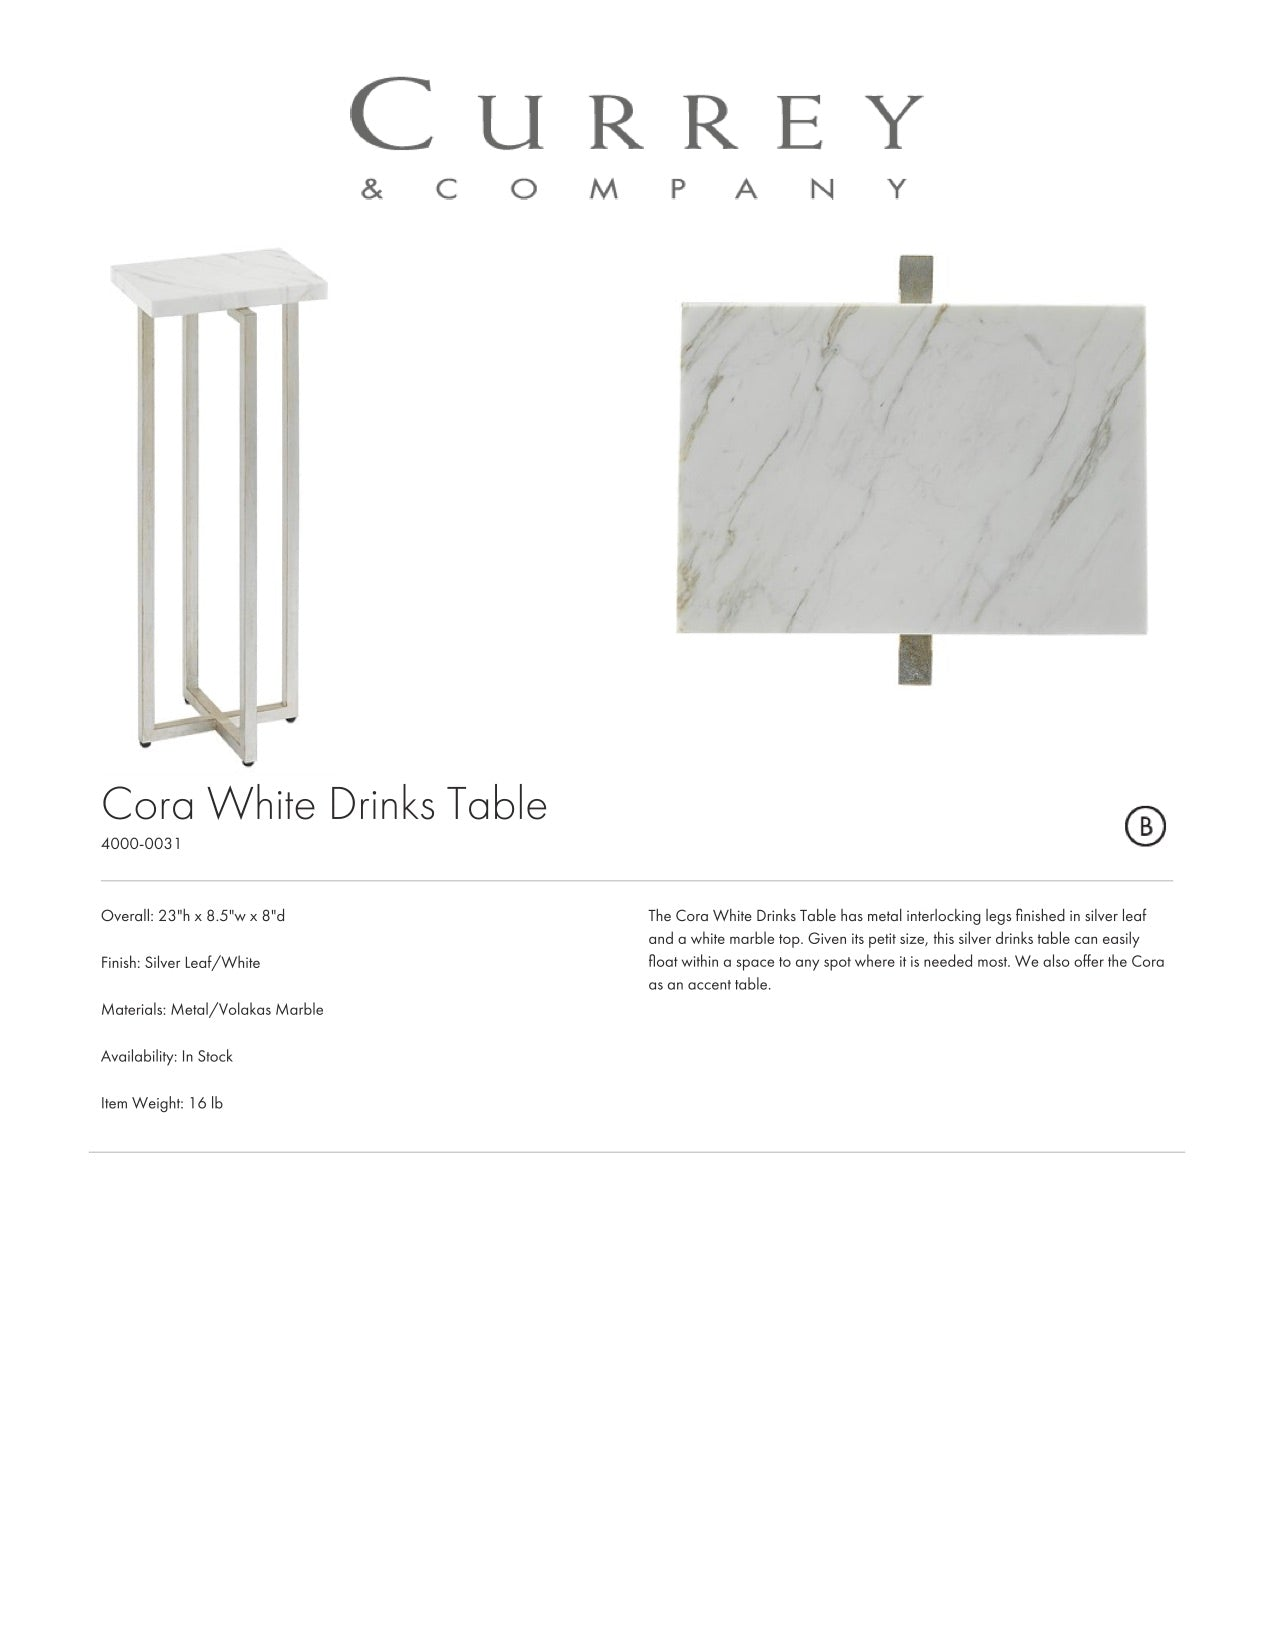 Currey & Company Cora White Drinks Table Tearsheet